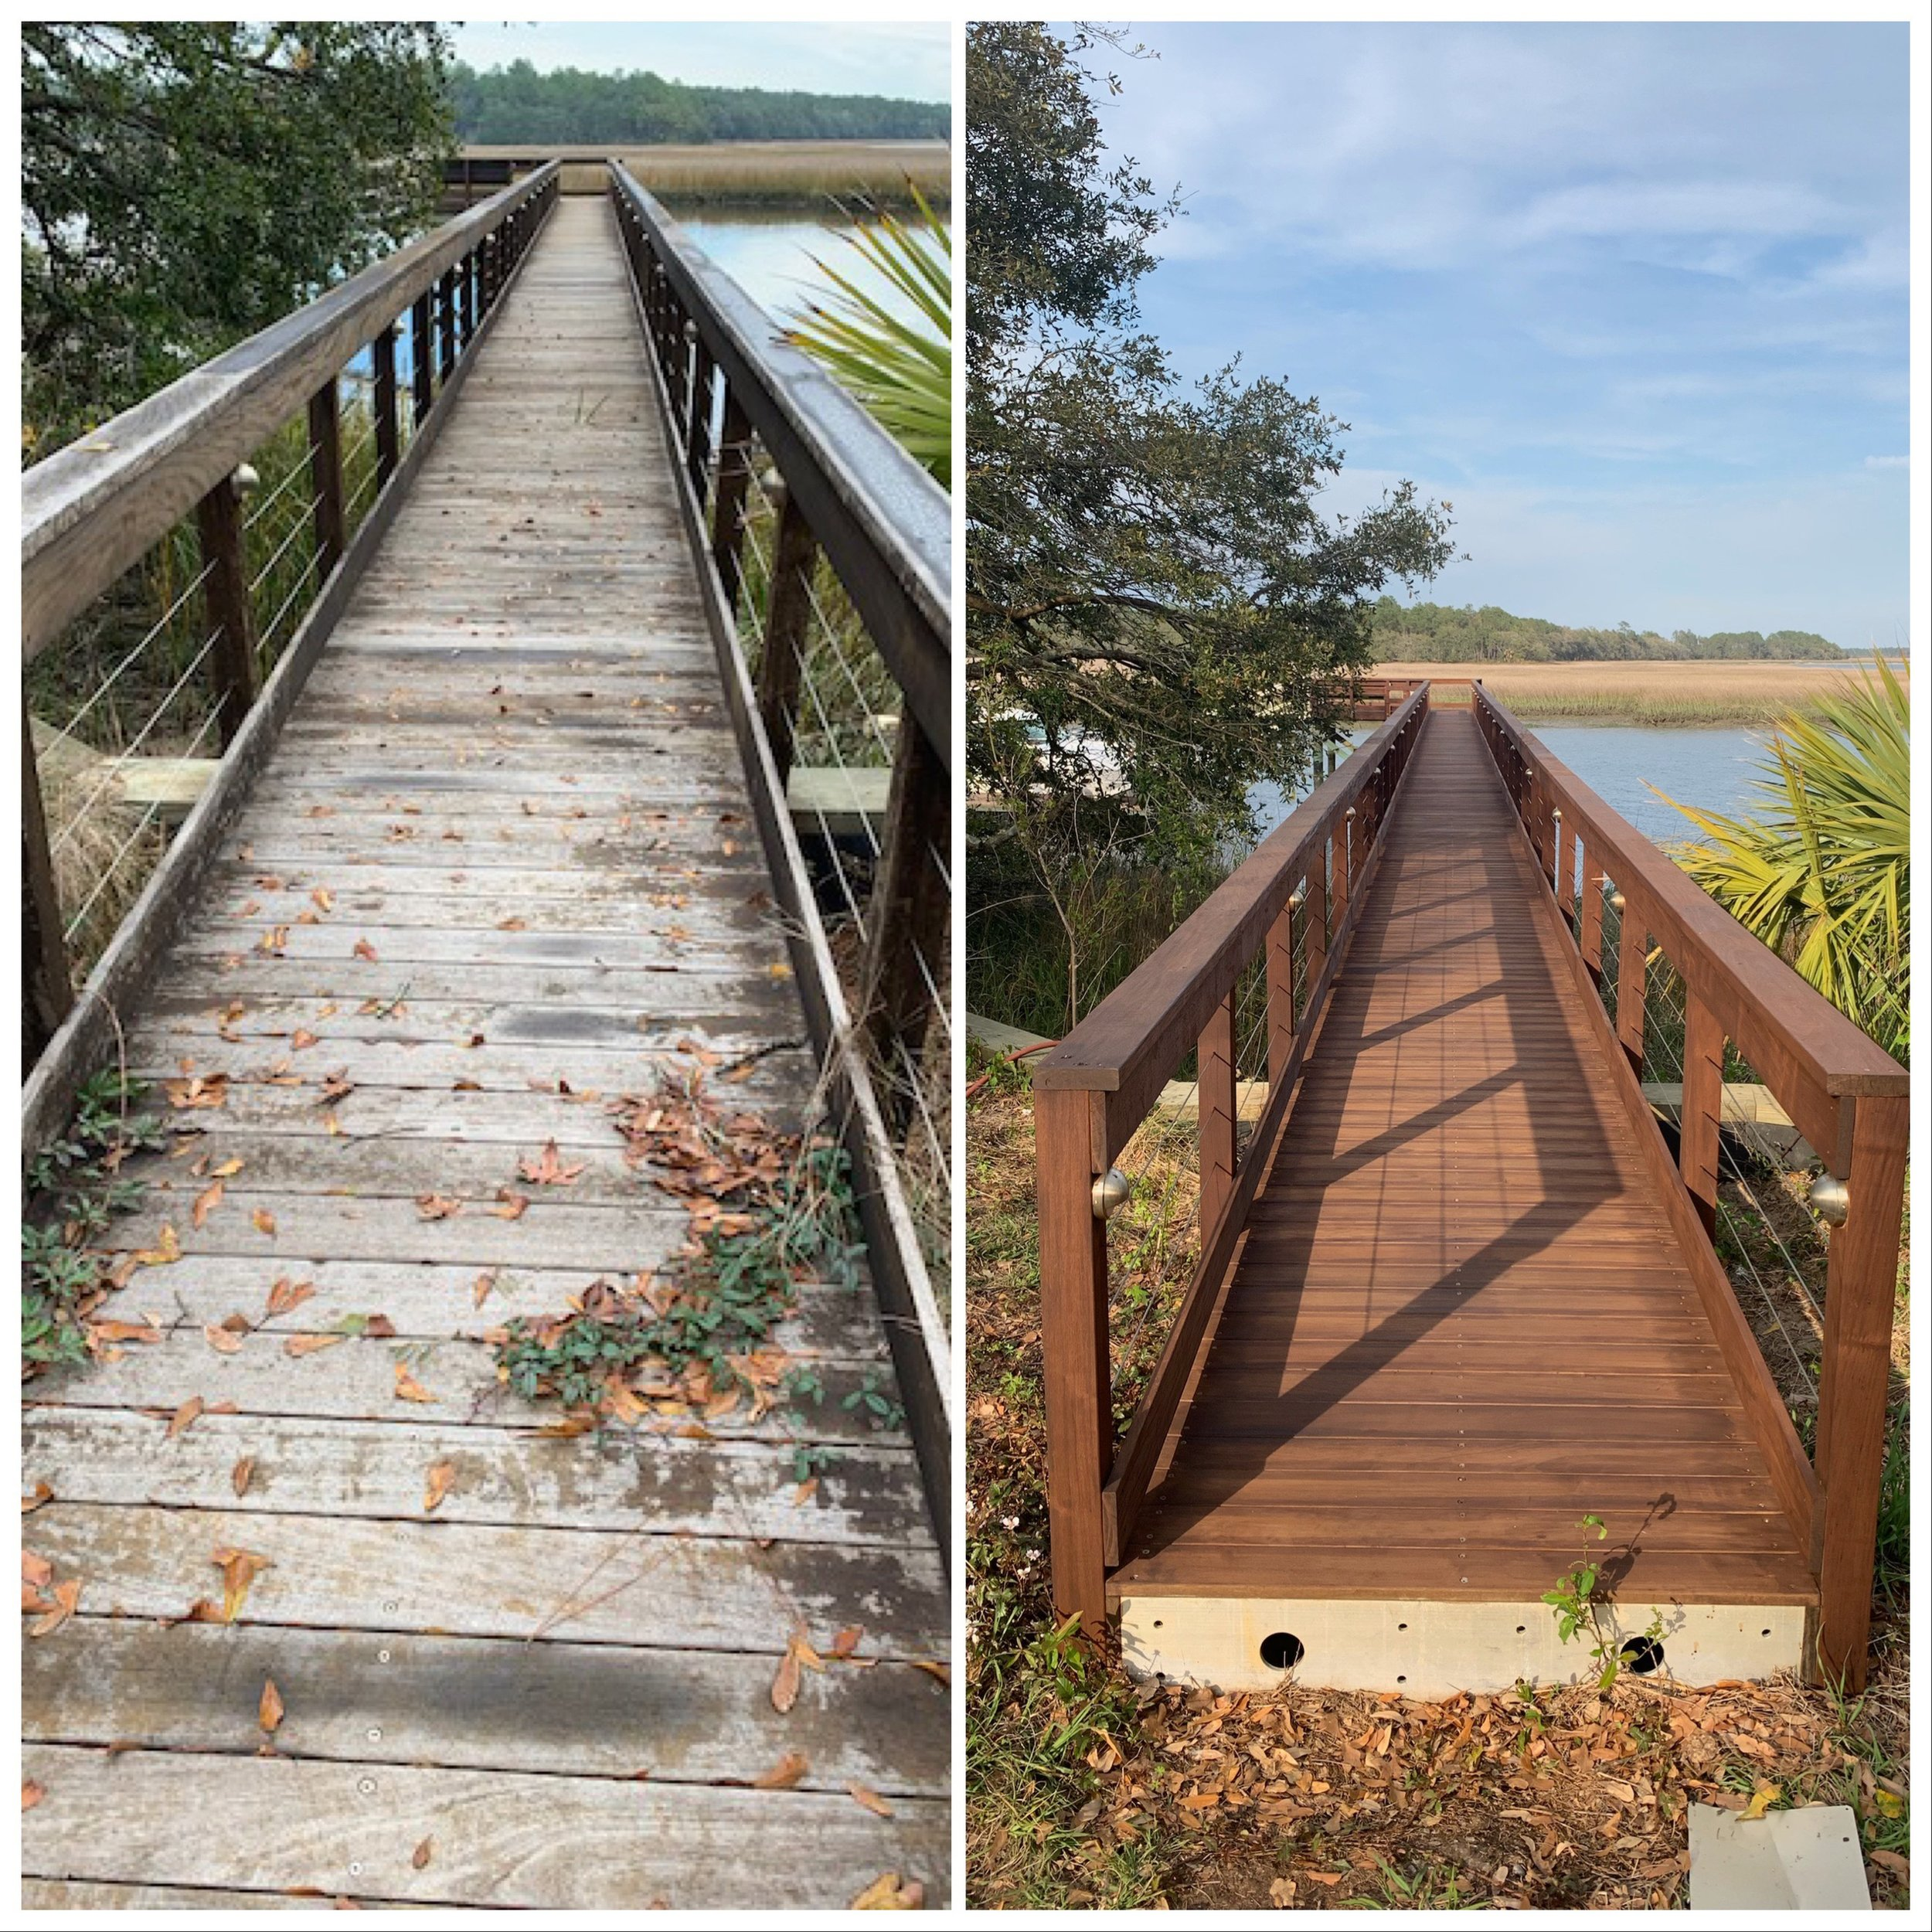 Wood Restoration & Staining - Making even the most neglected surfaces look new again! Weather is your worst enemy, especially out here in the low country. Properly restoring and staining your deck, pier, deck, porch, pergola, etc. will have it looking new and keep it in great shape for years to come!